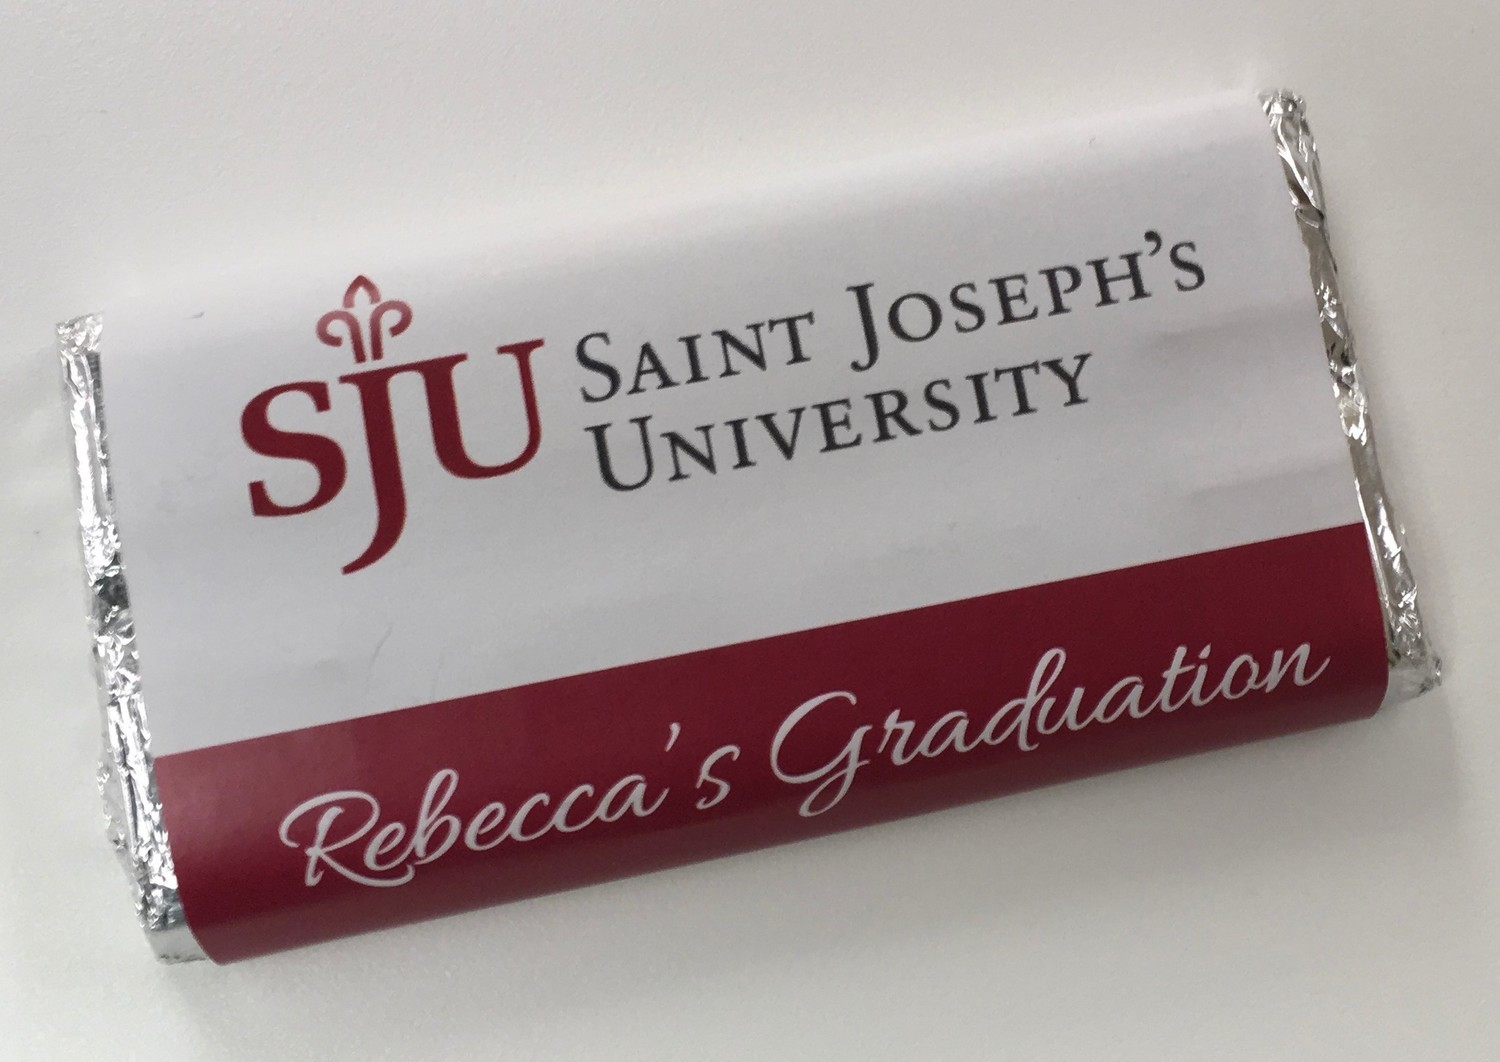 Chocolate Candy Bar with Personalized Wrapper.